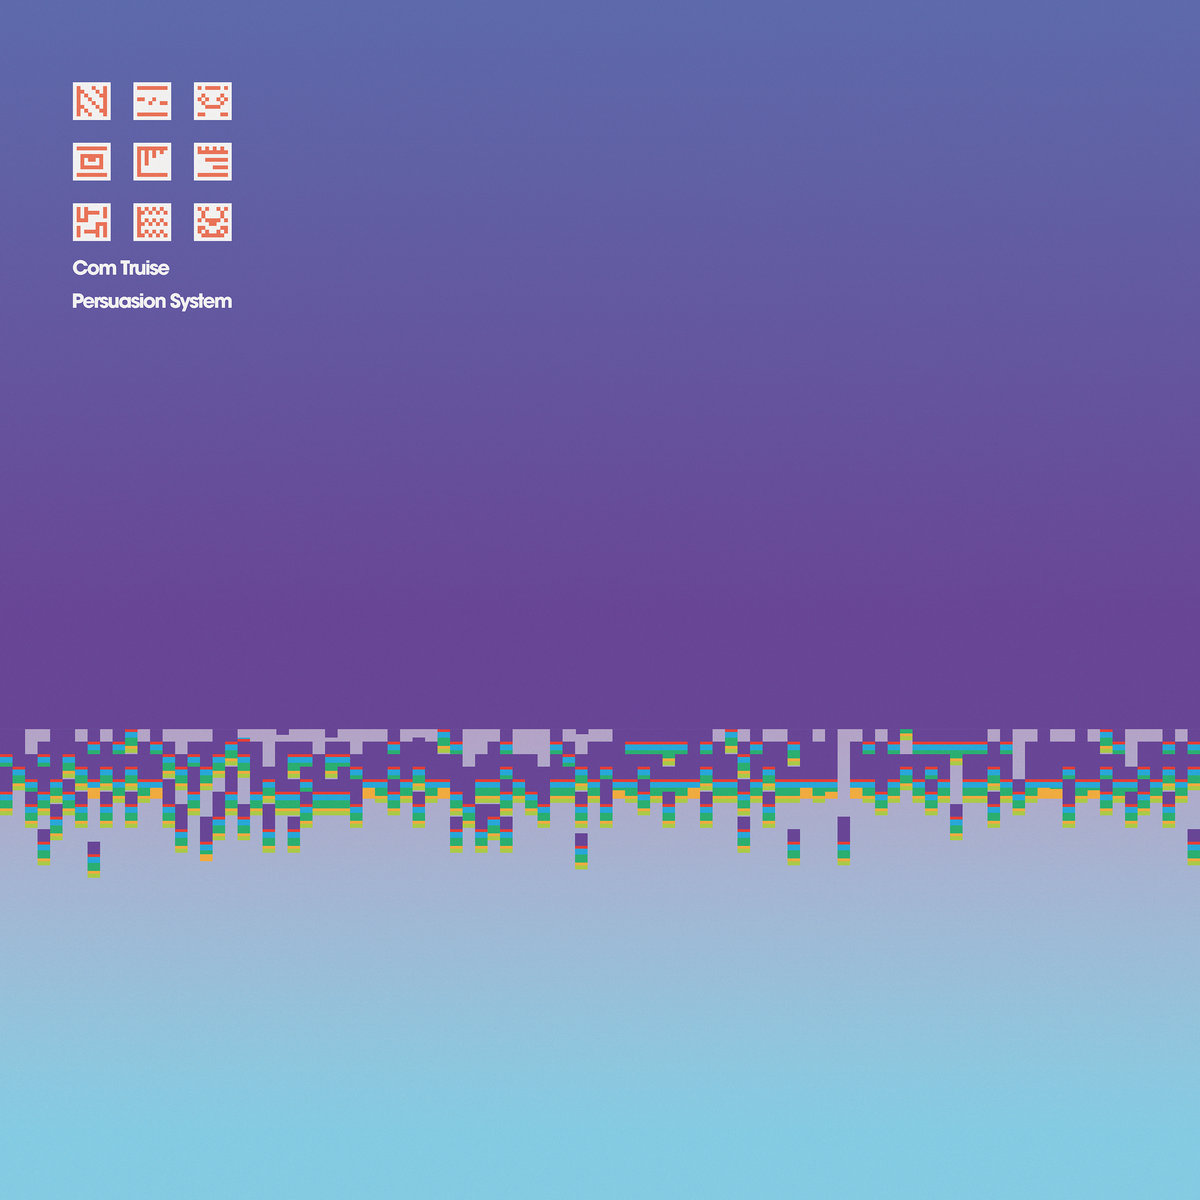 """Artwork for Com Truise's next album """" Persuasion System""""  which   releases May 17, 2019 ."""